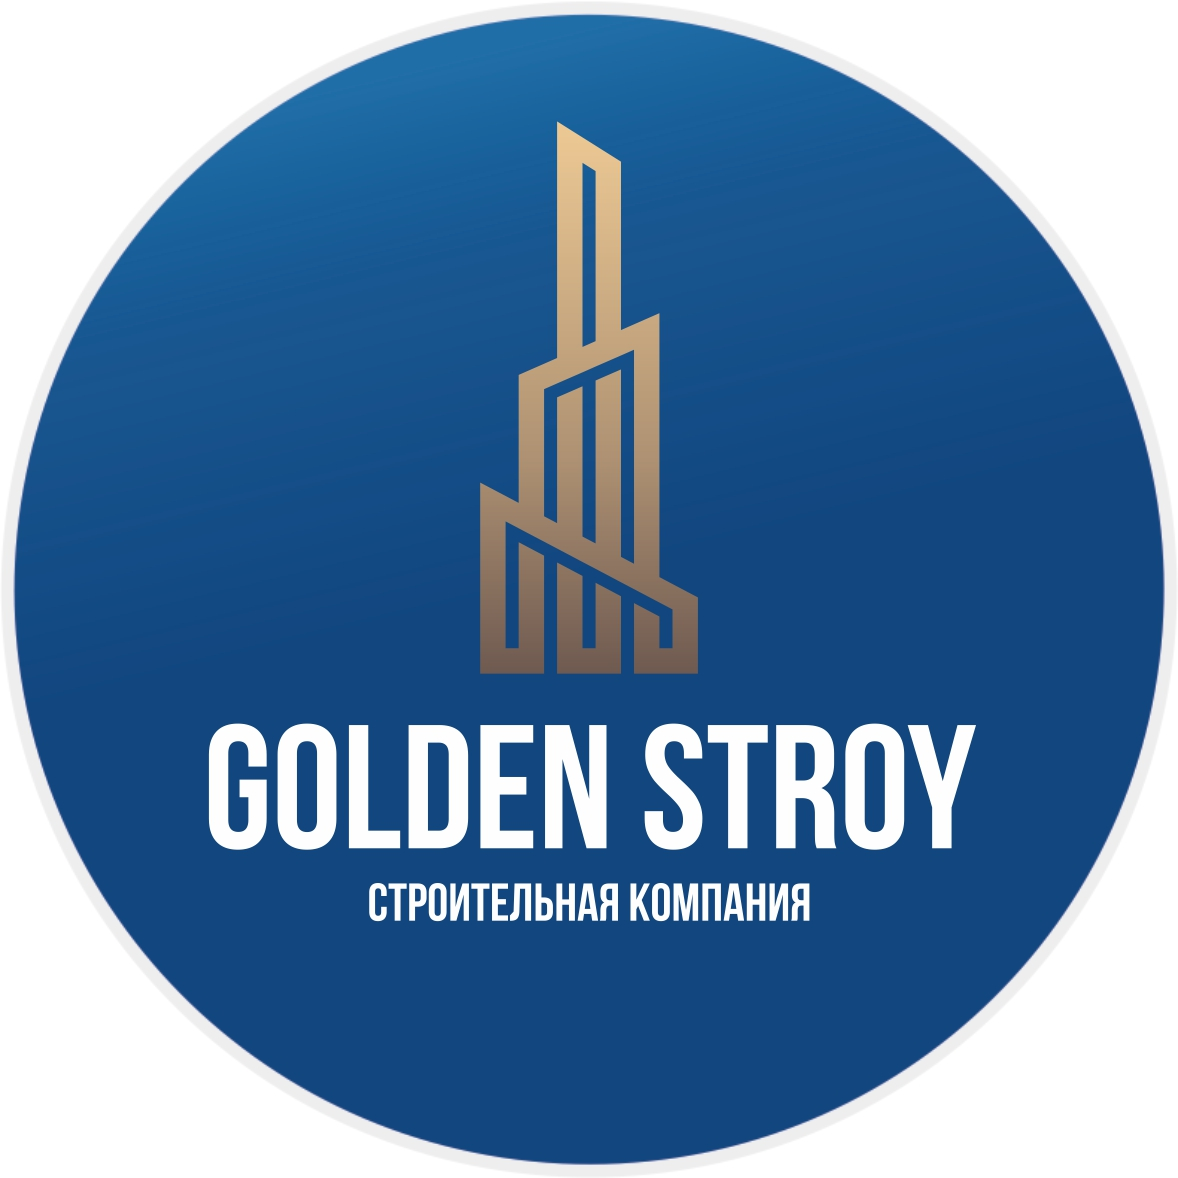 Golden Stroy